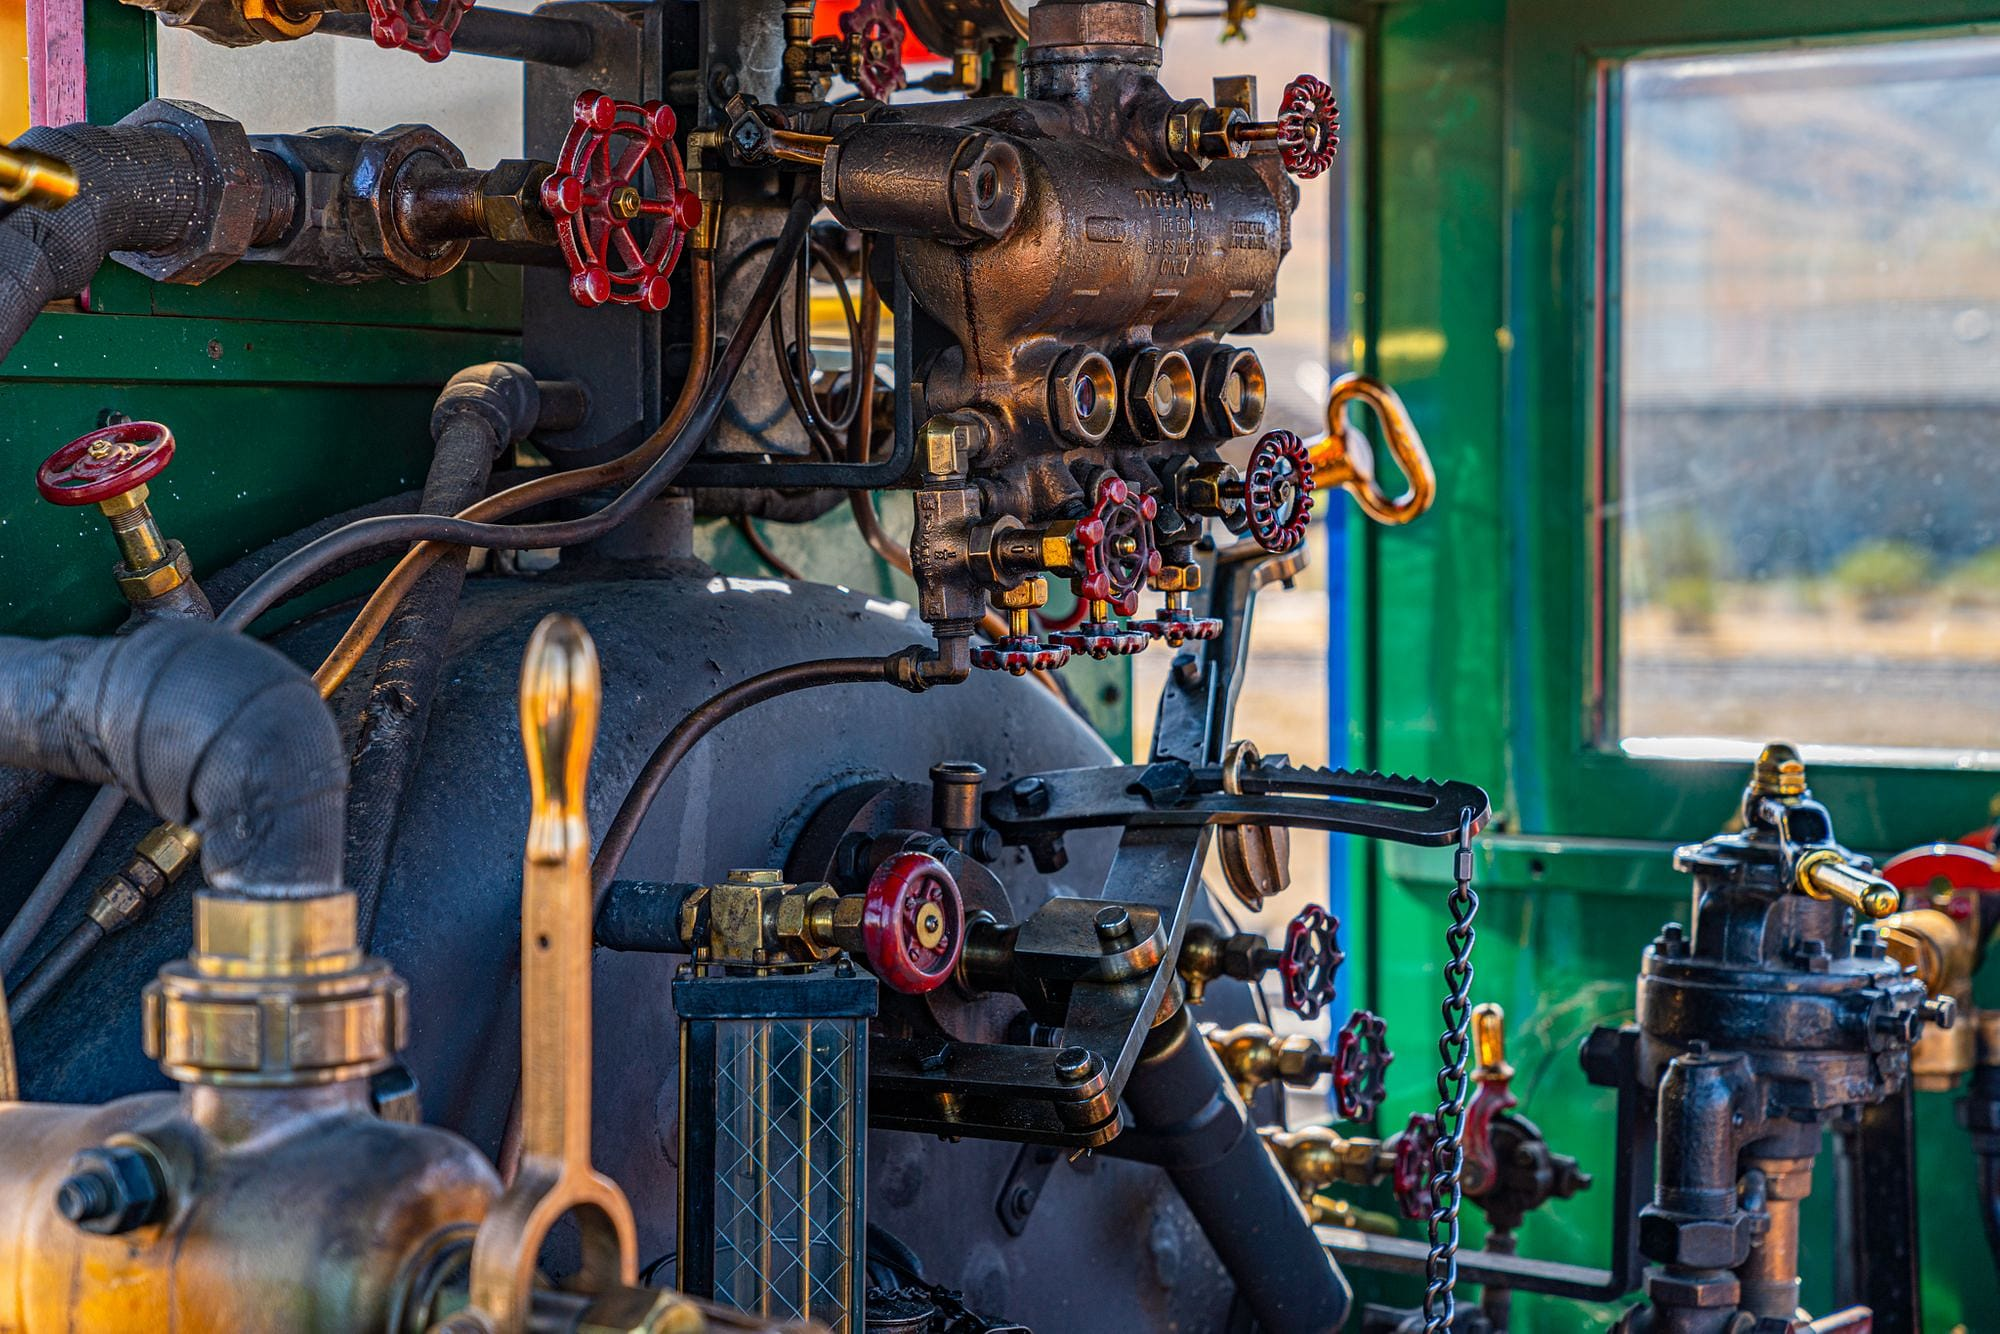 Jupiter Locomotive Controls